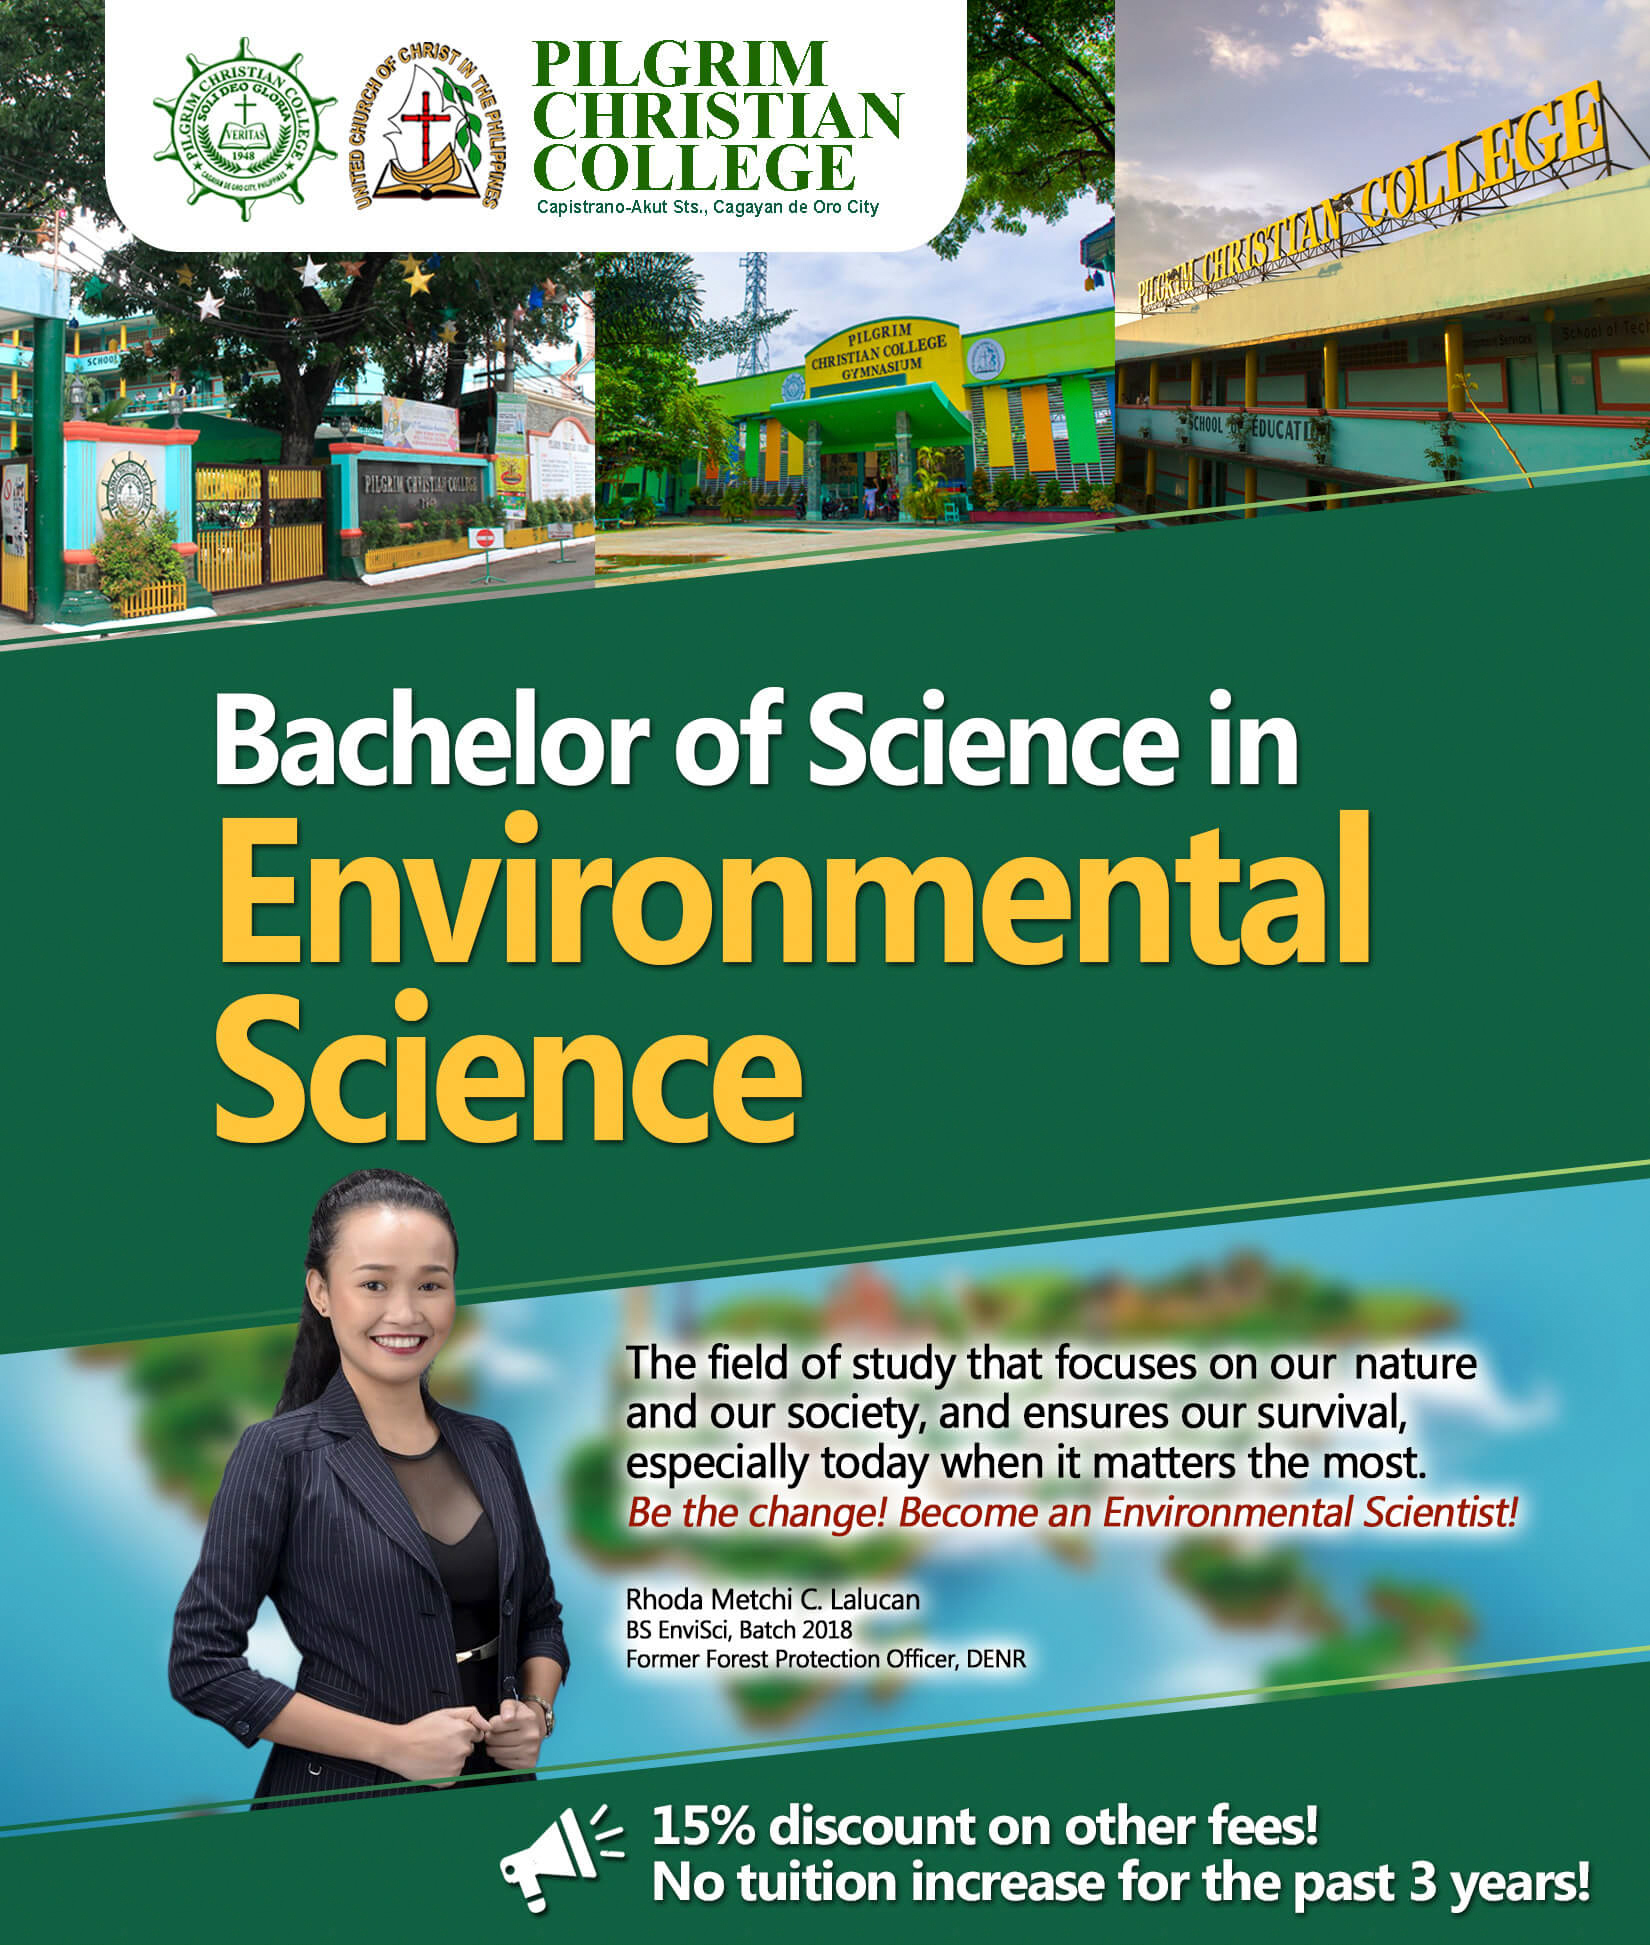 Bachelor-of-Science-in-Environmental-Science